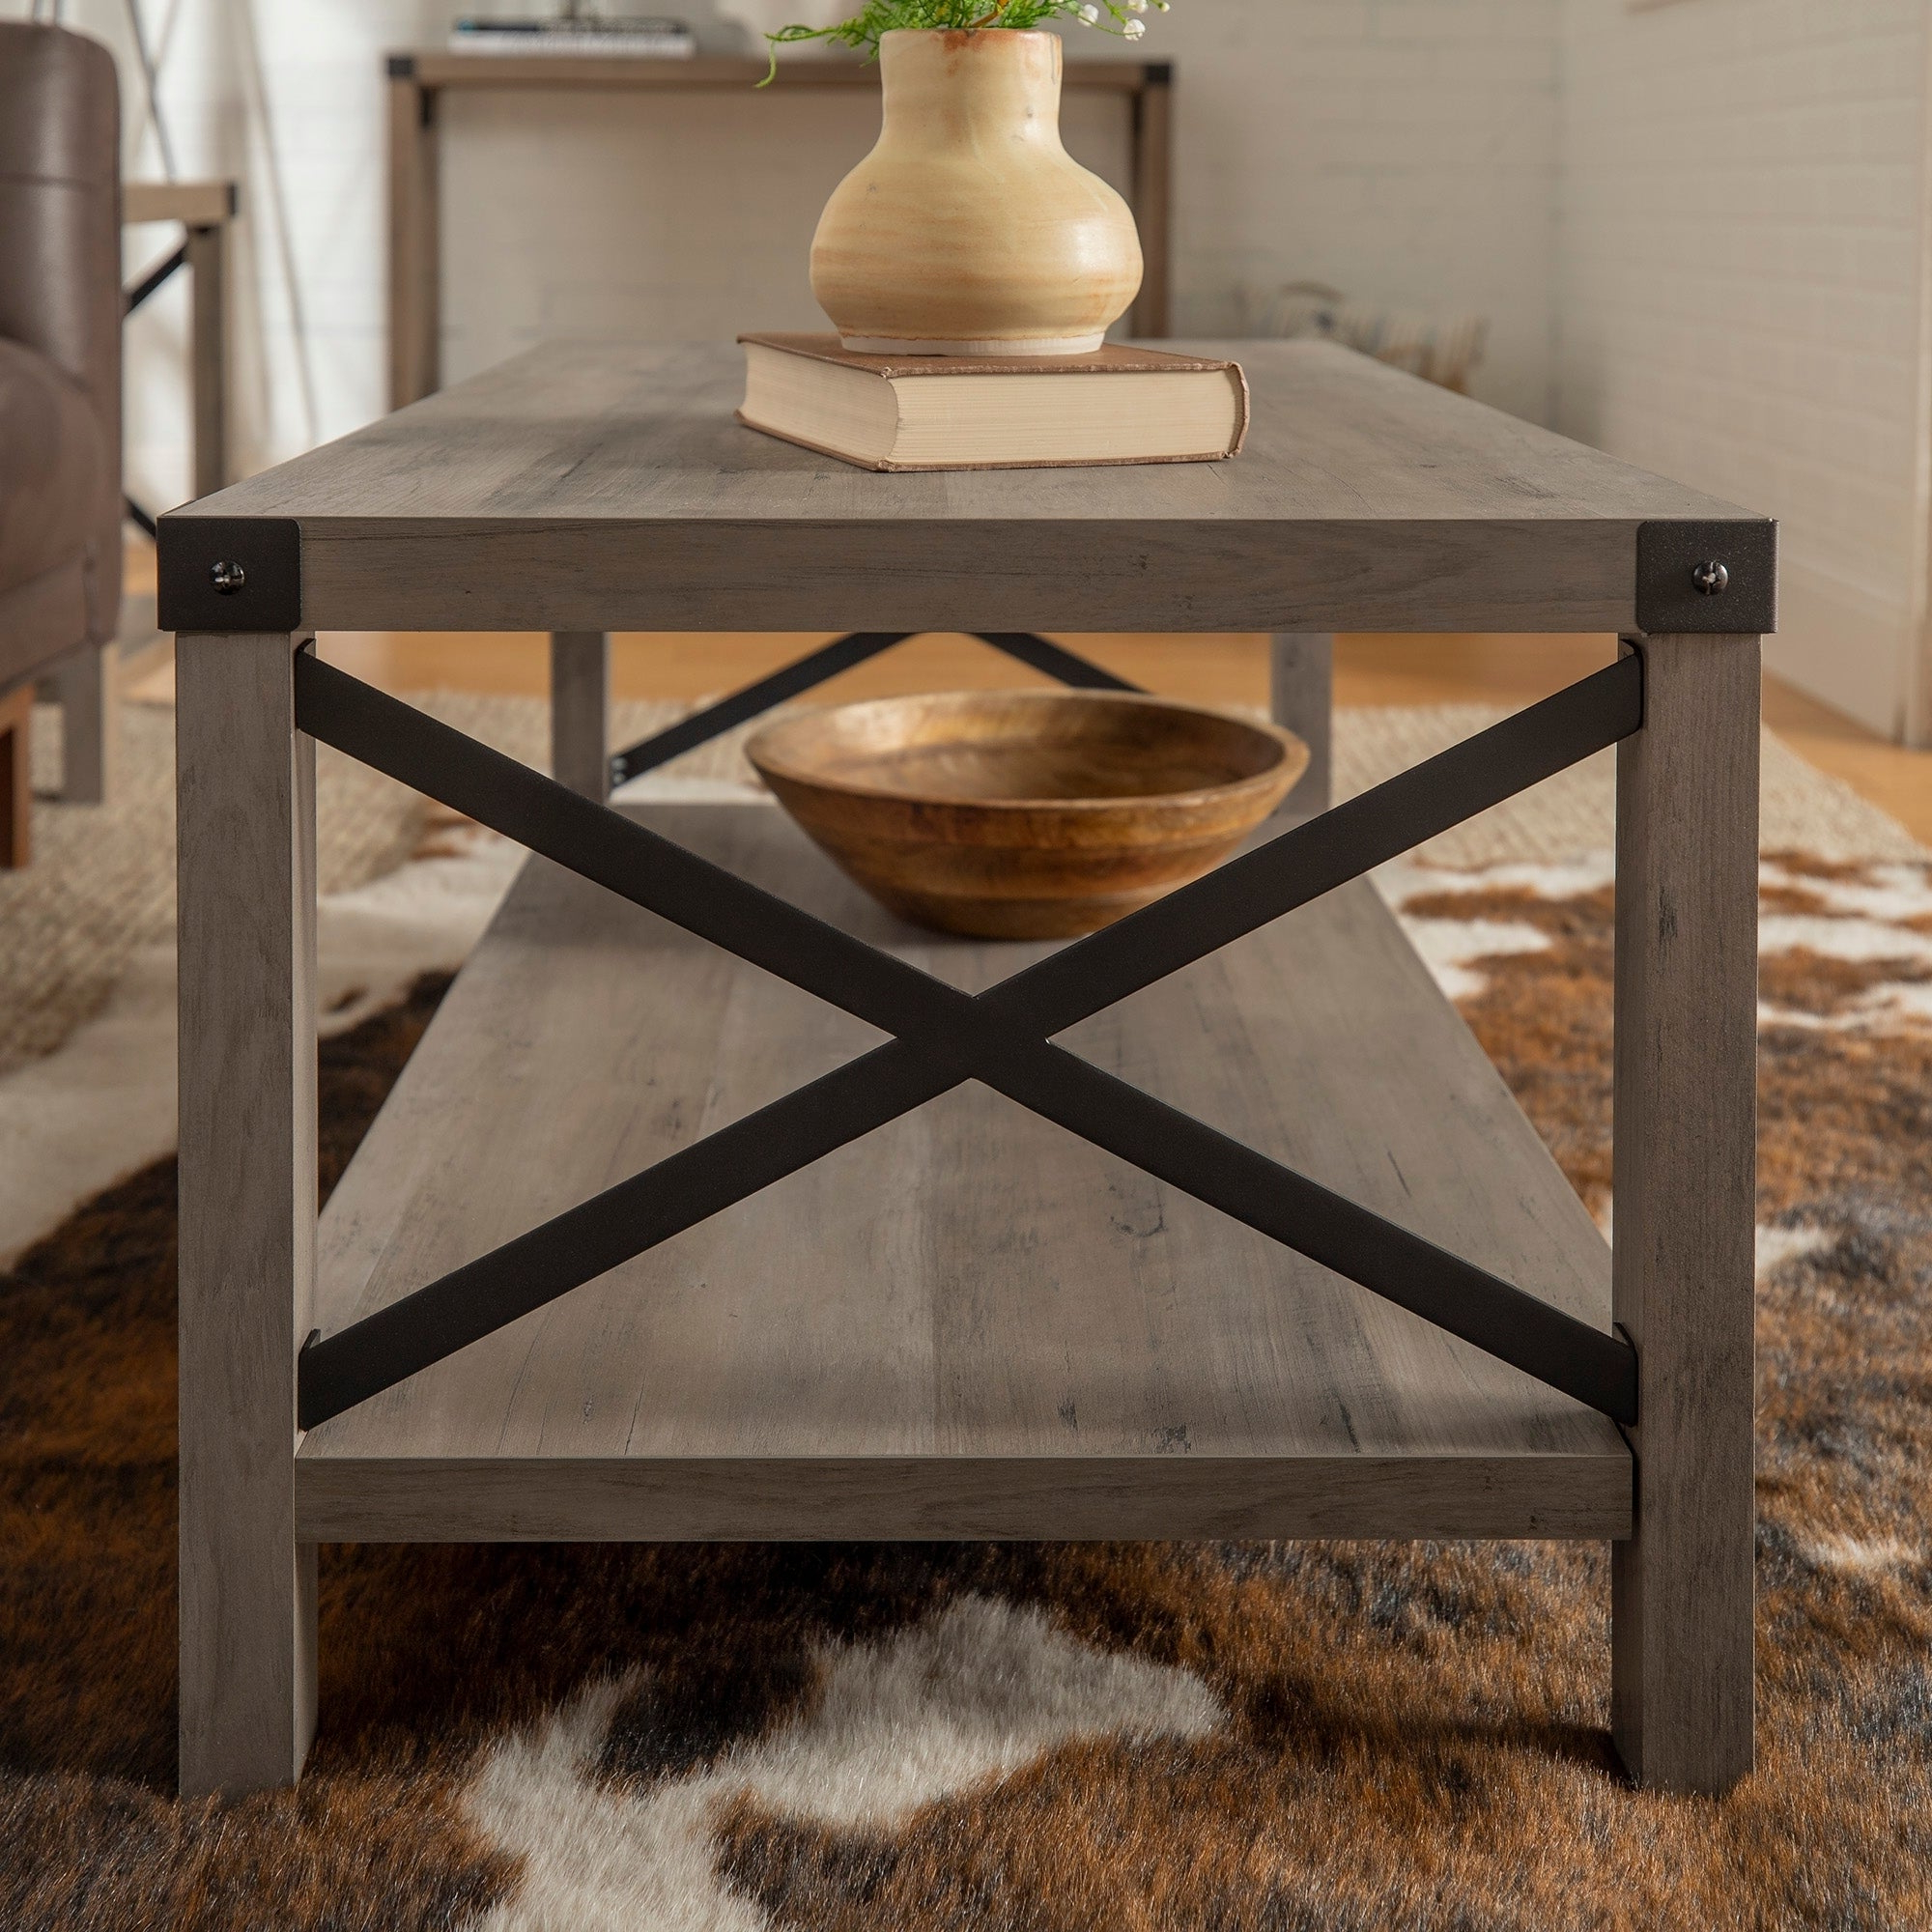 Well Known The Gray Barn Kujawa Metal X Coffee Tables – 40 X 22 X 18h Regarding The Gray Barn Kujawa Metal X Coffee Table – 40 X 22 X 18h (View 4 of 20)